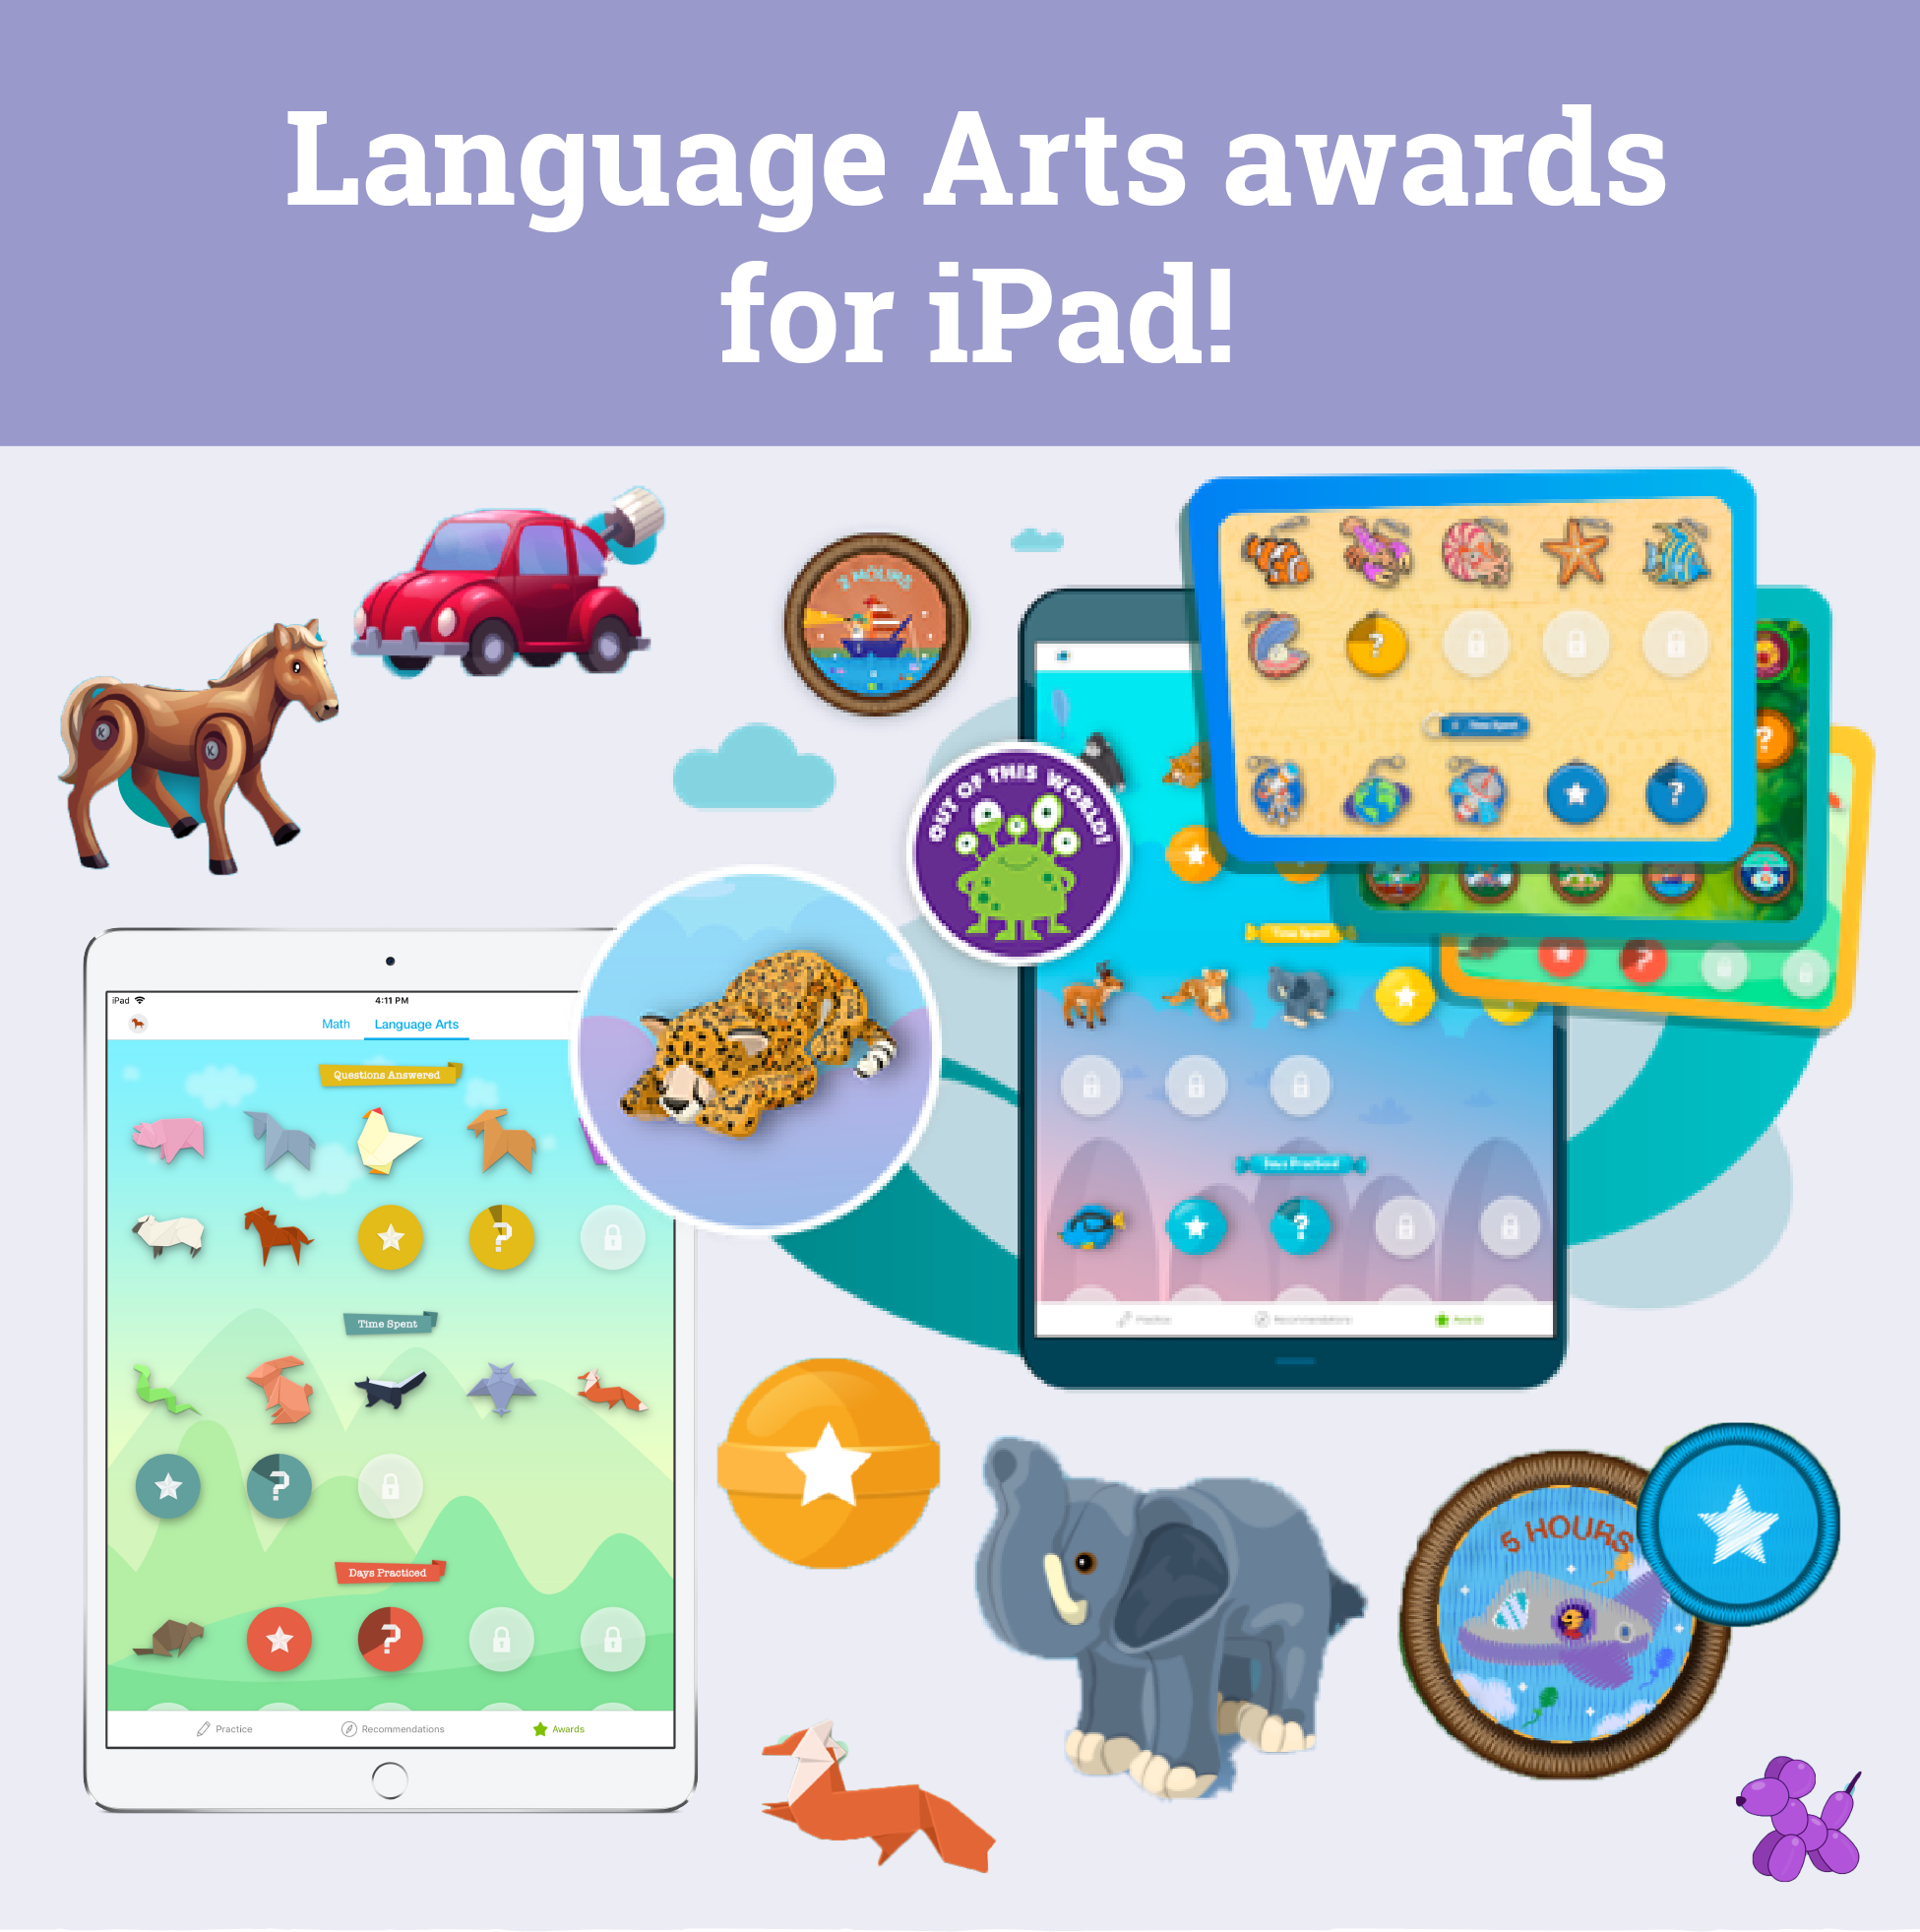 Language arts awards are now available on iPad!